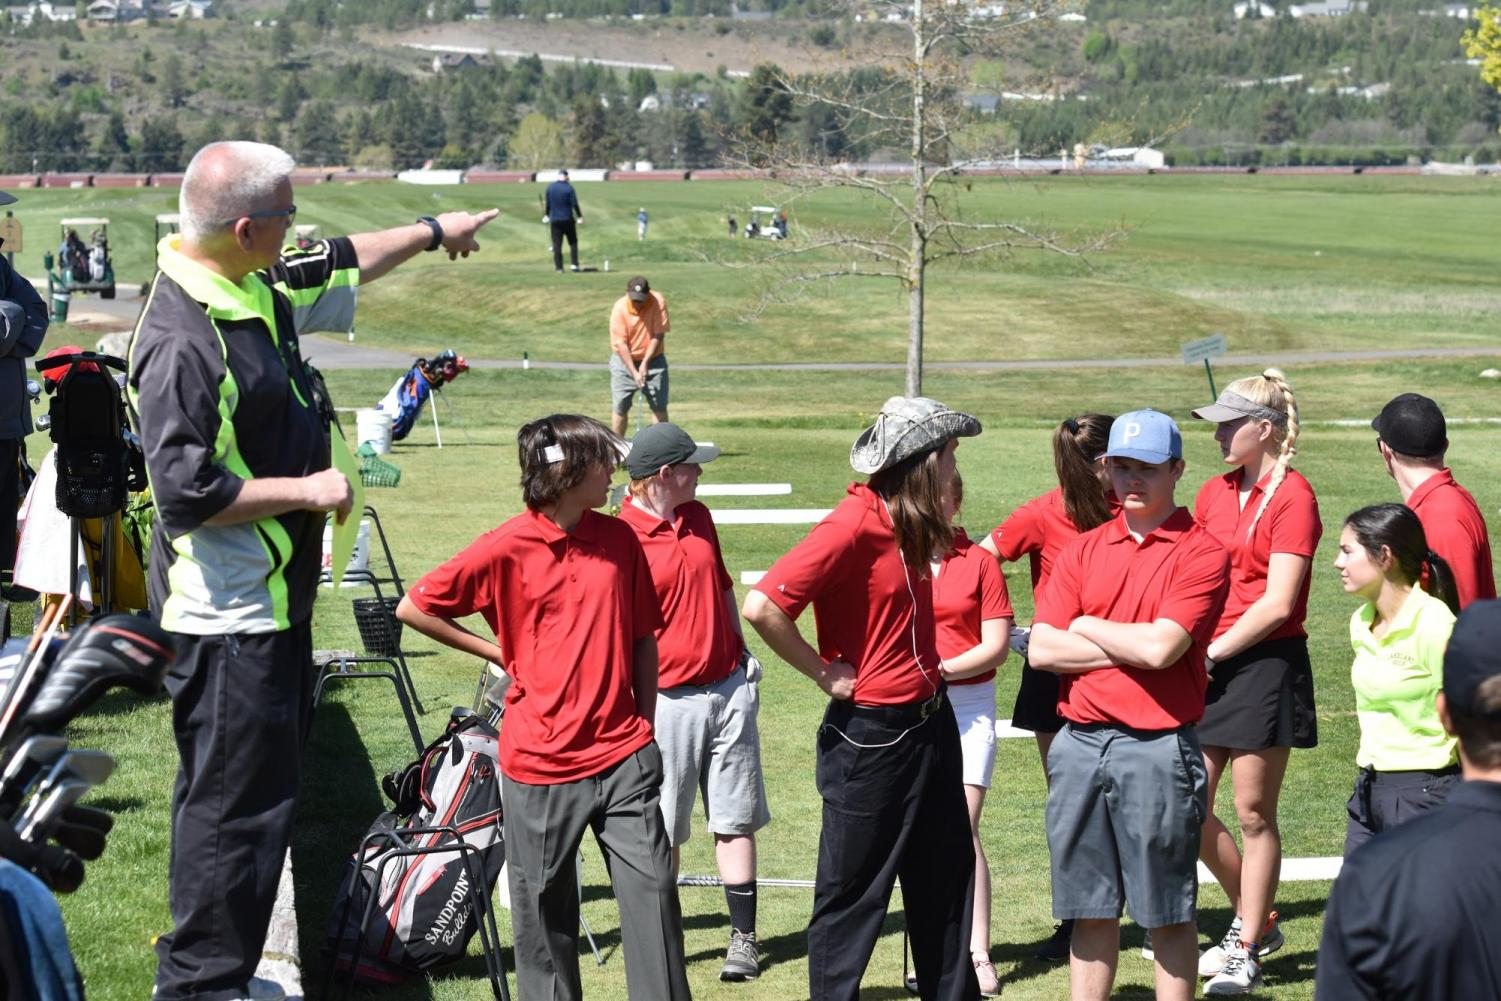 Golf+players+are+briefed+about+the+course+before+the+tournament+starts.